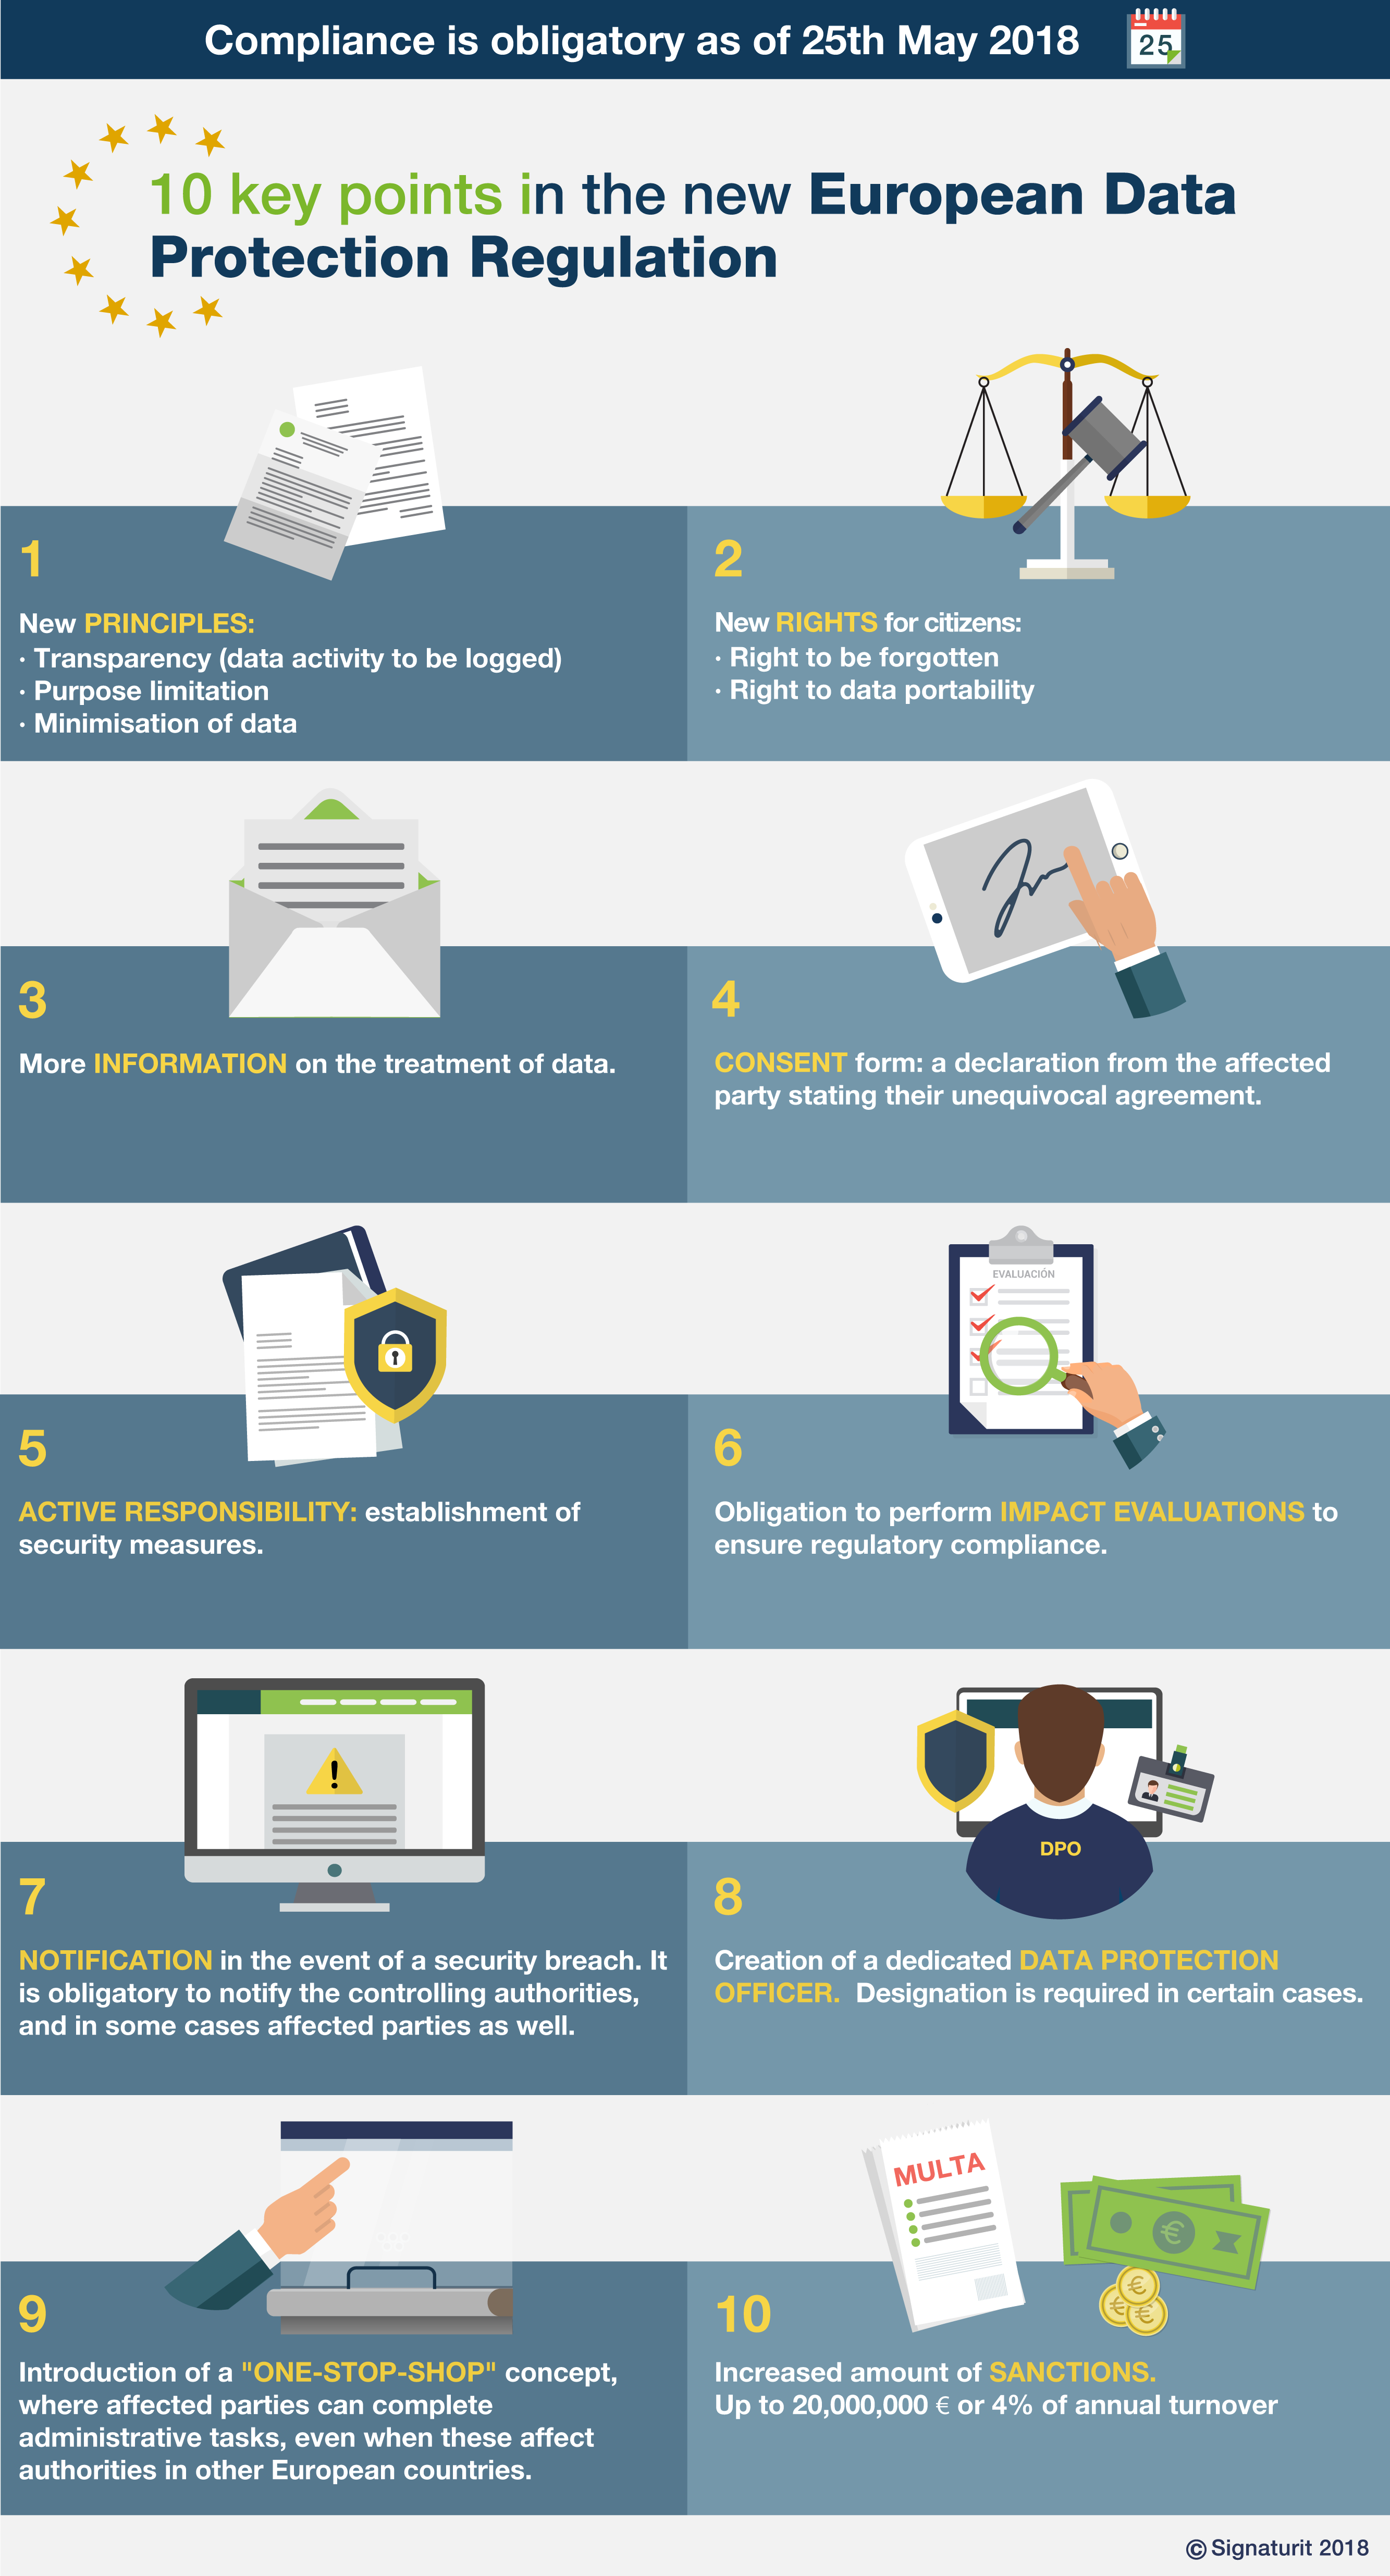 GDPR-infographic-10-key-points-General-Data-Protection-Regulation.png